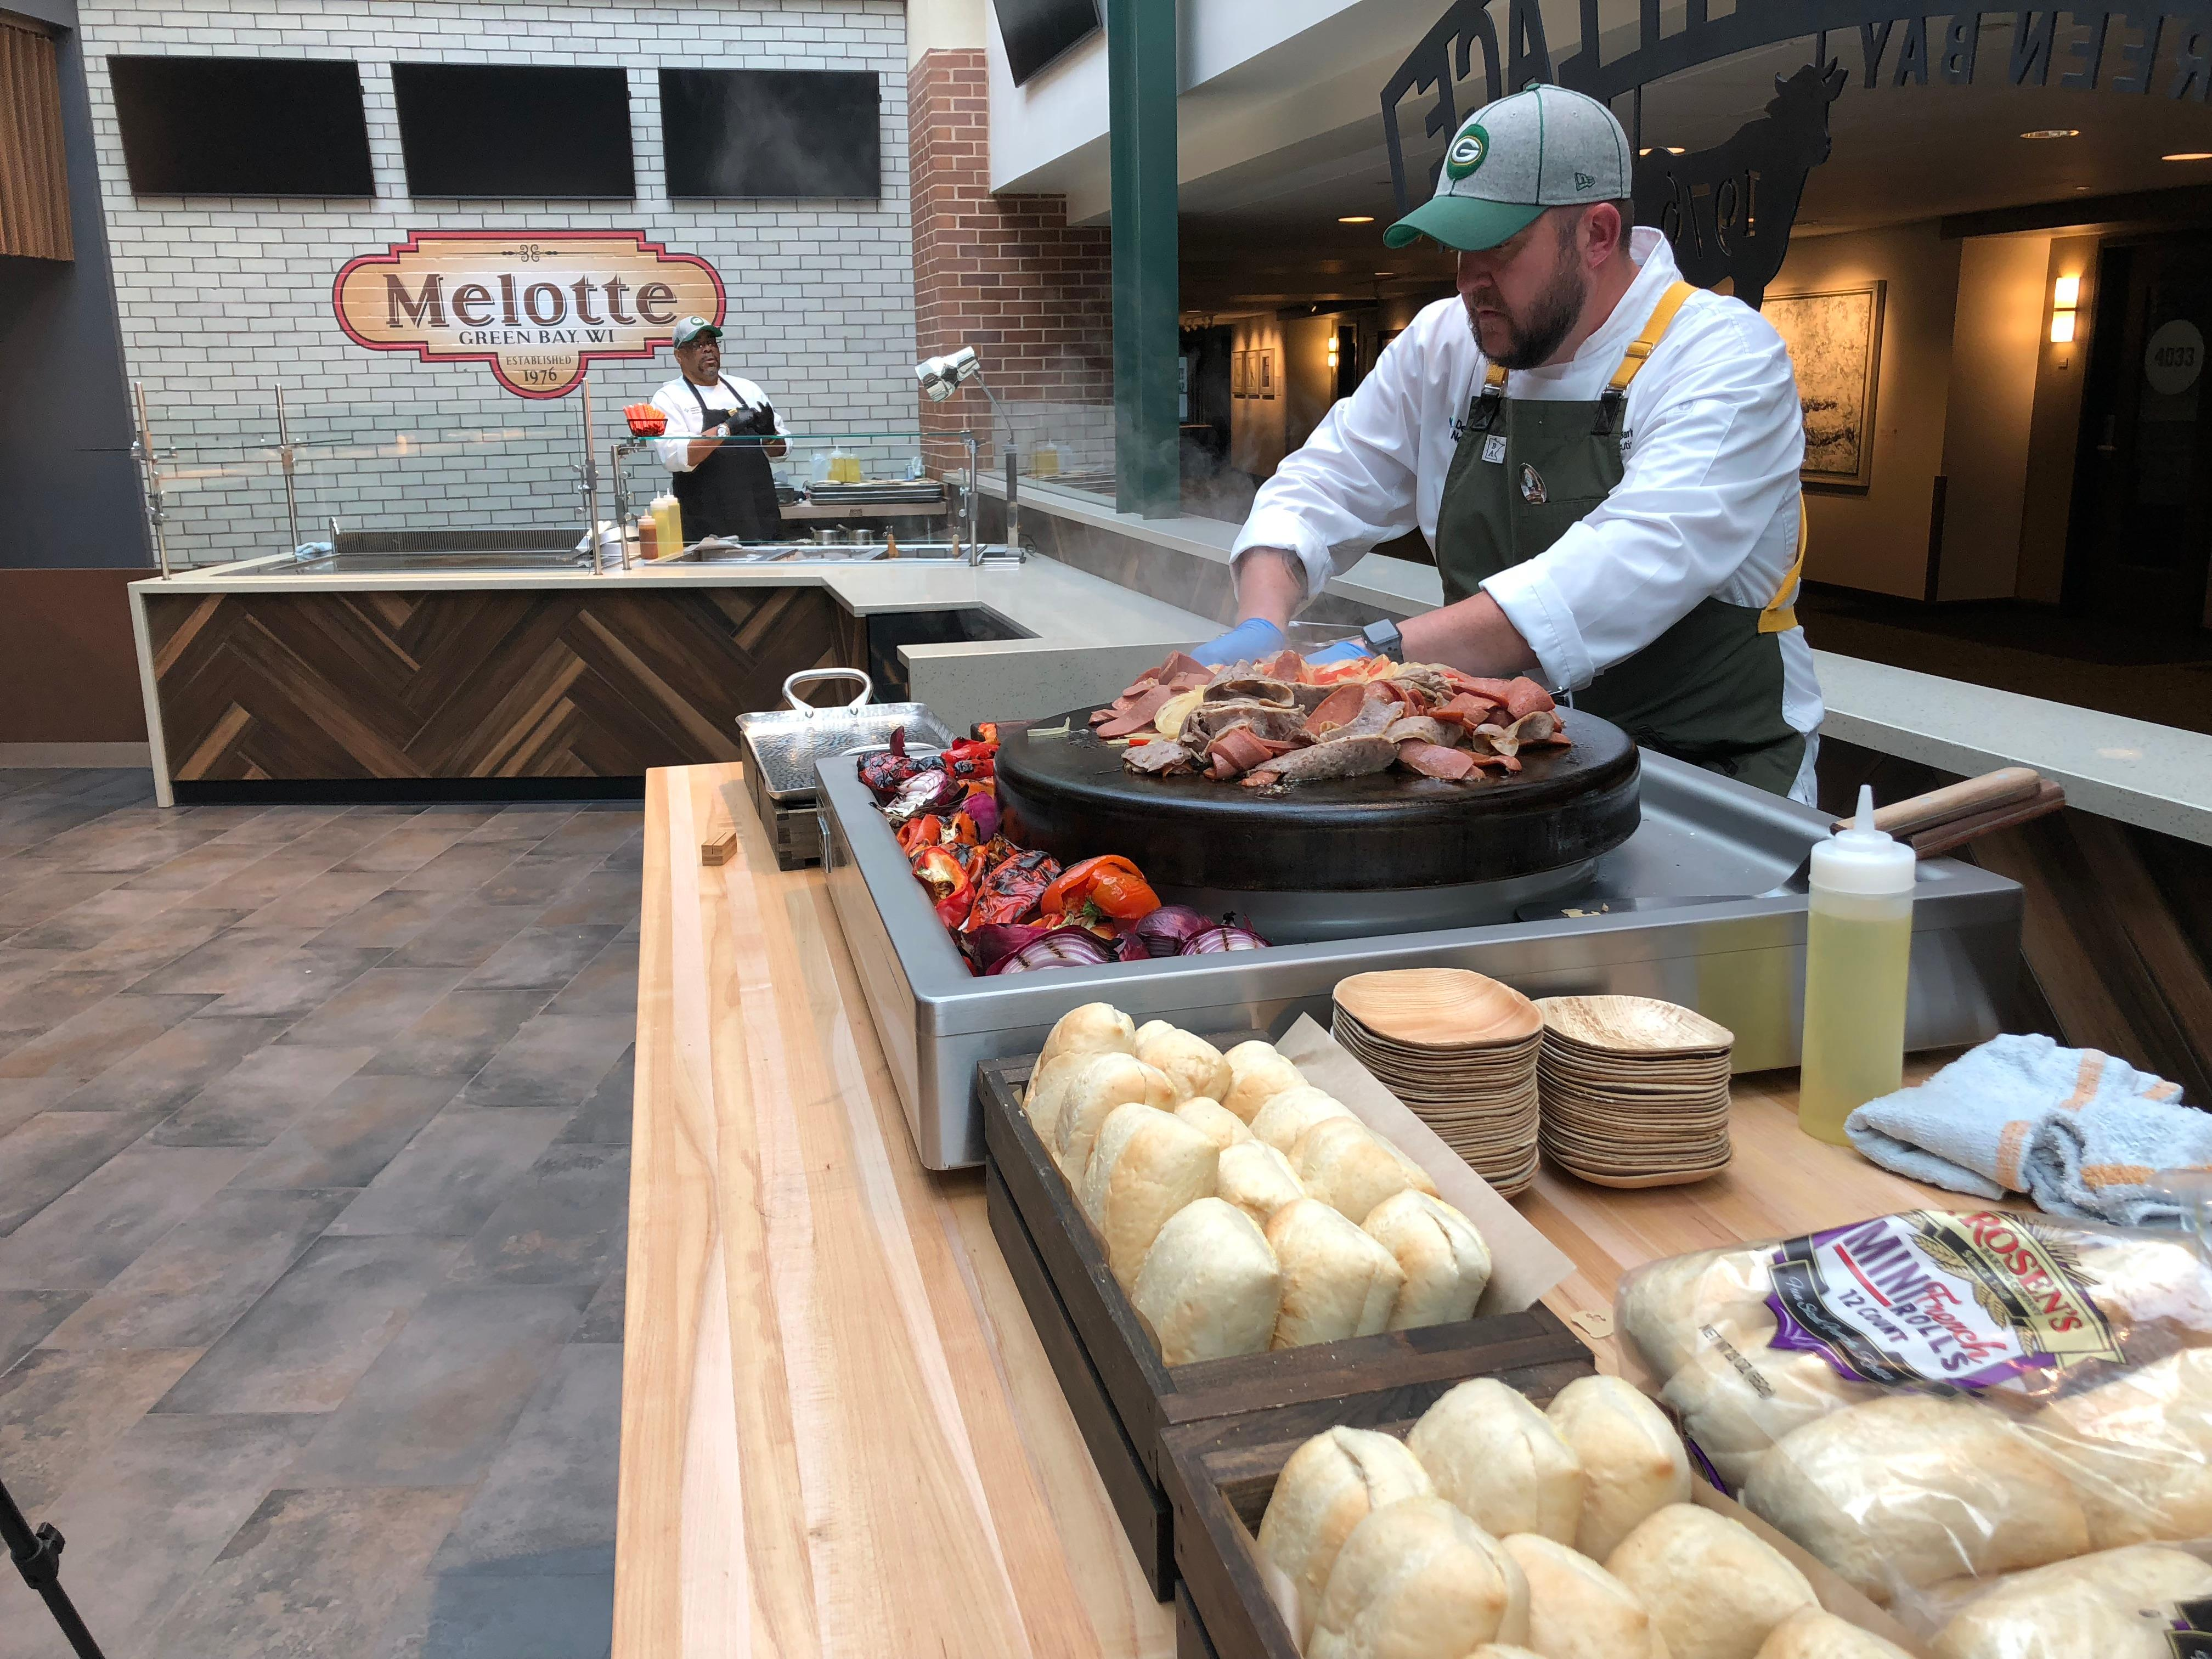 Lambeau Field Executive Chef Heath Barbato preparing new Packers game day food, September 10, 2019 (WLUK/Eric Peterson)